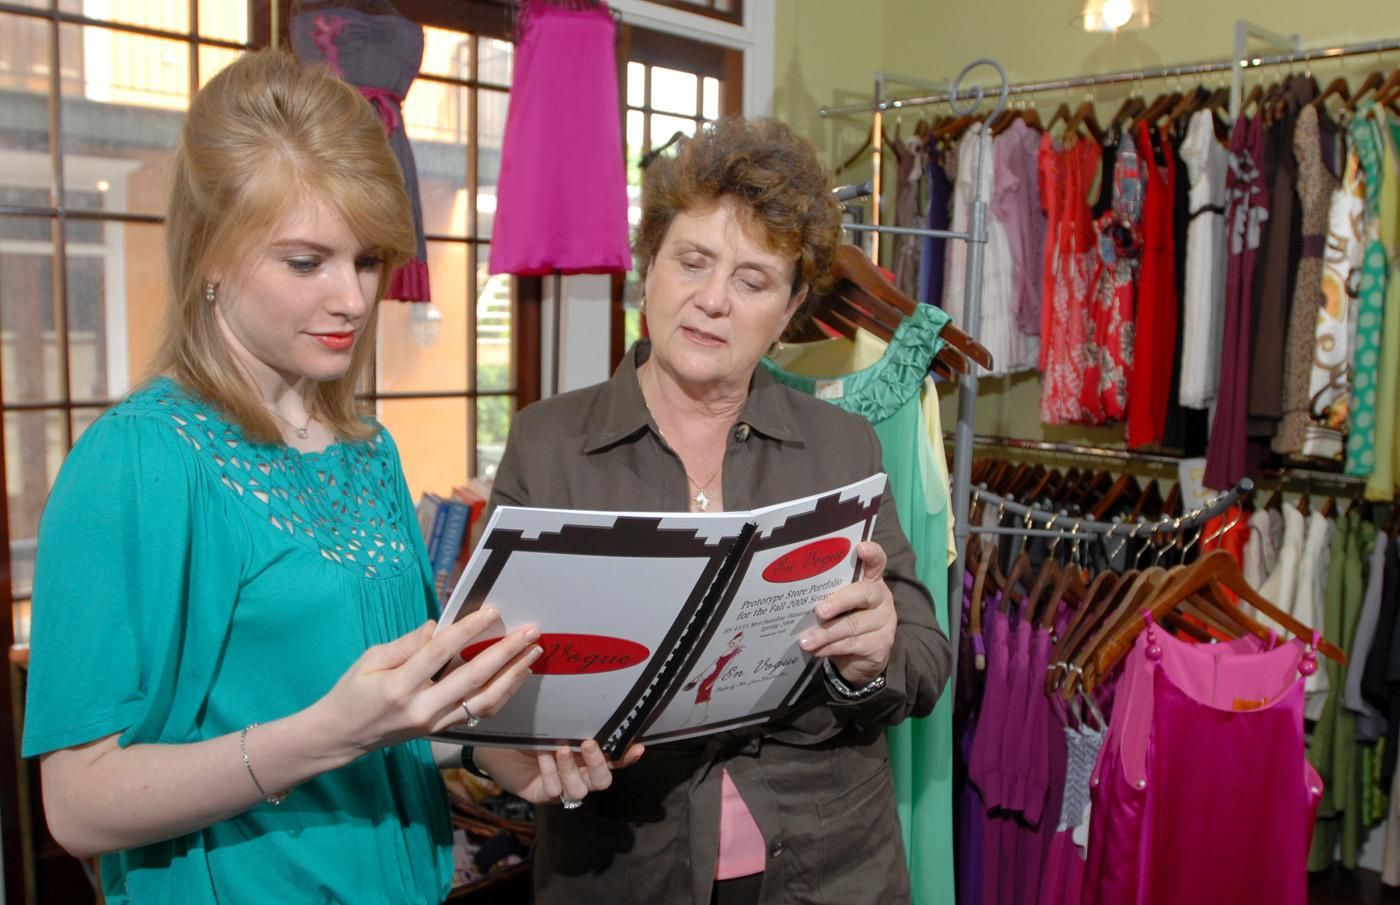 Mississippi State University senior Samantha Webb, left, of Forest, compares marketing information for a Starkville clothing store with one of her major professors, Wanda Cheek. (Photo by Jim Lytle)